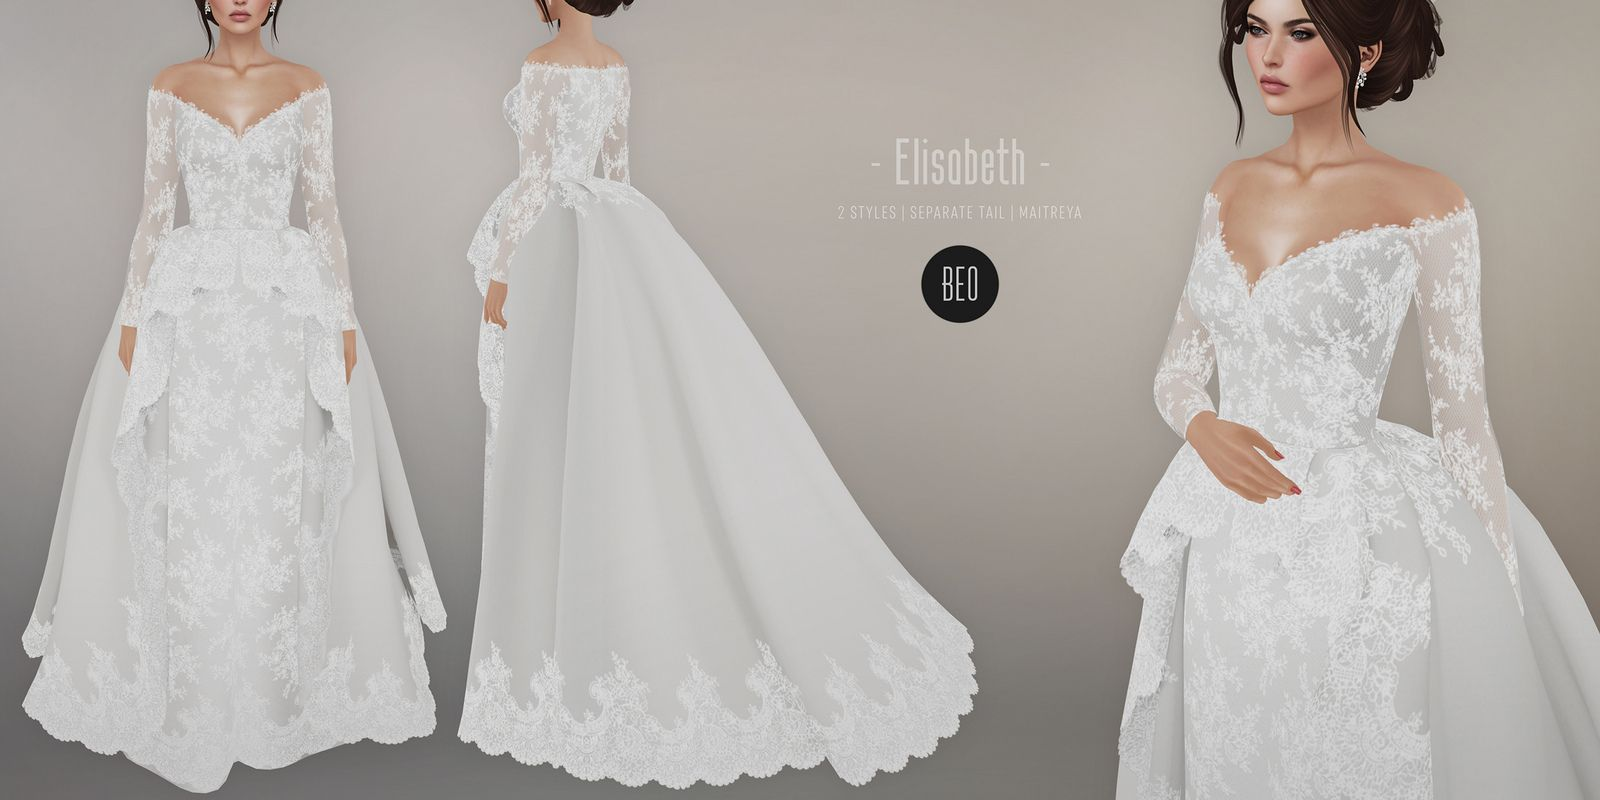 Beo Elisabeth Wedding Gown Sims 4 Wedding Dress Sims 4